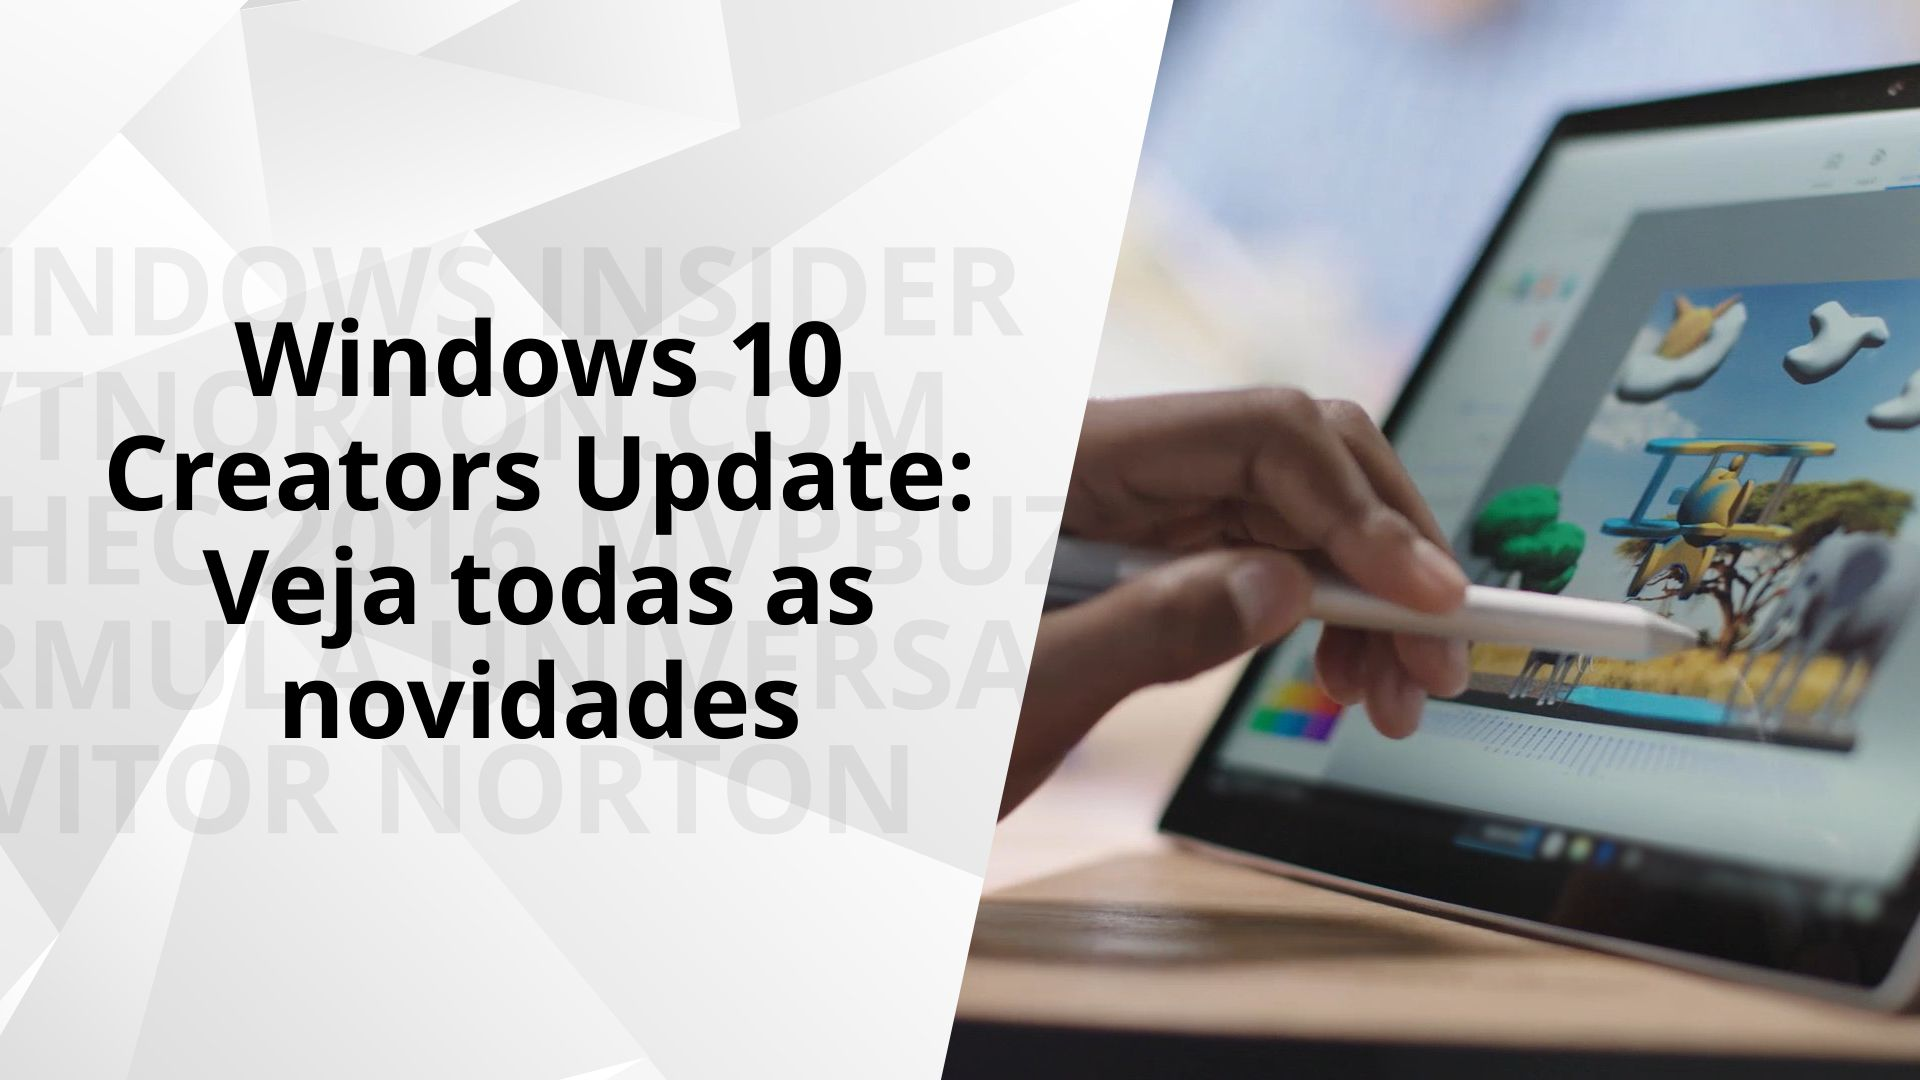 As novidades do Windows 10 Creators Update